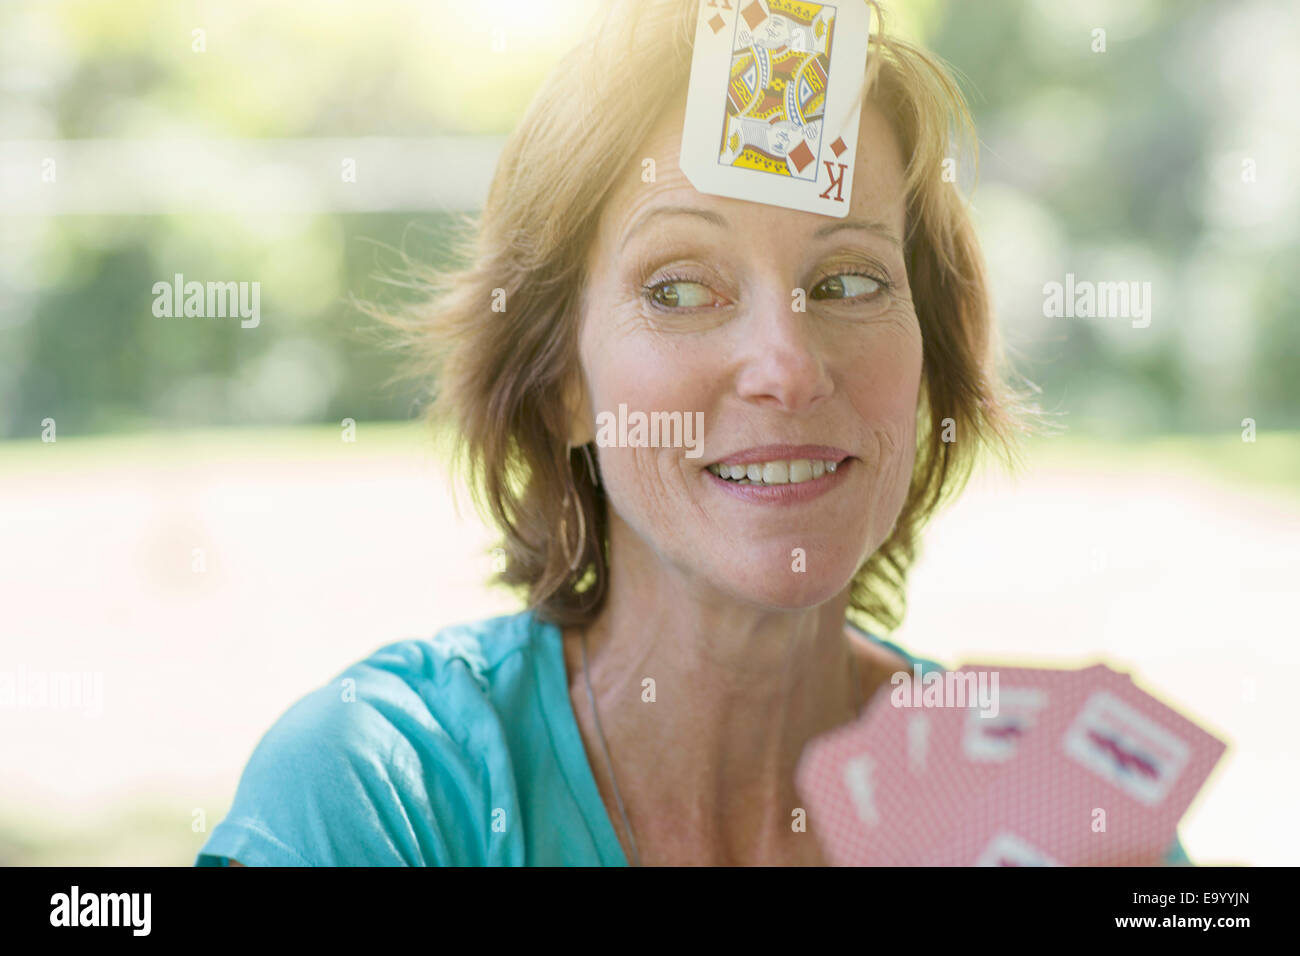 Mature woman playing cards, a playing card stuck on her forehead - Stock Image